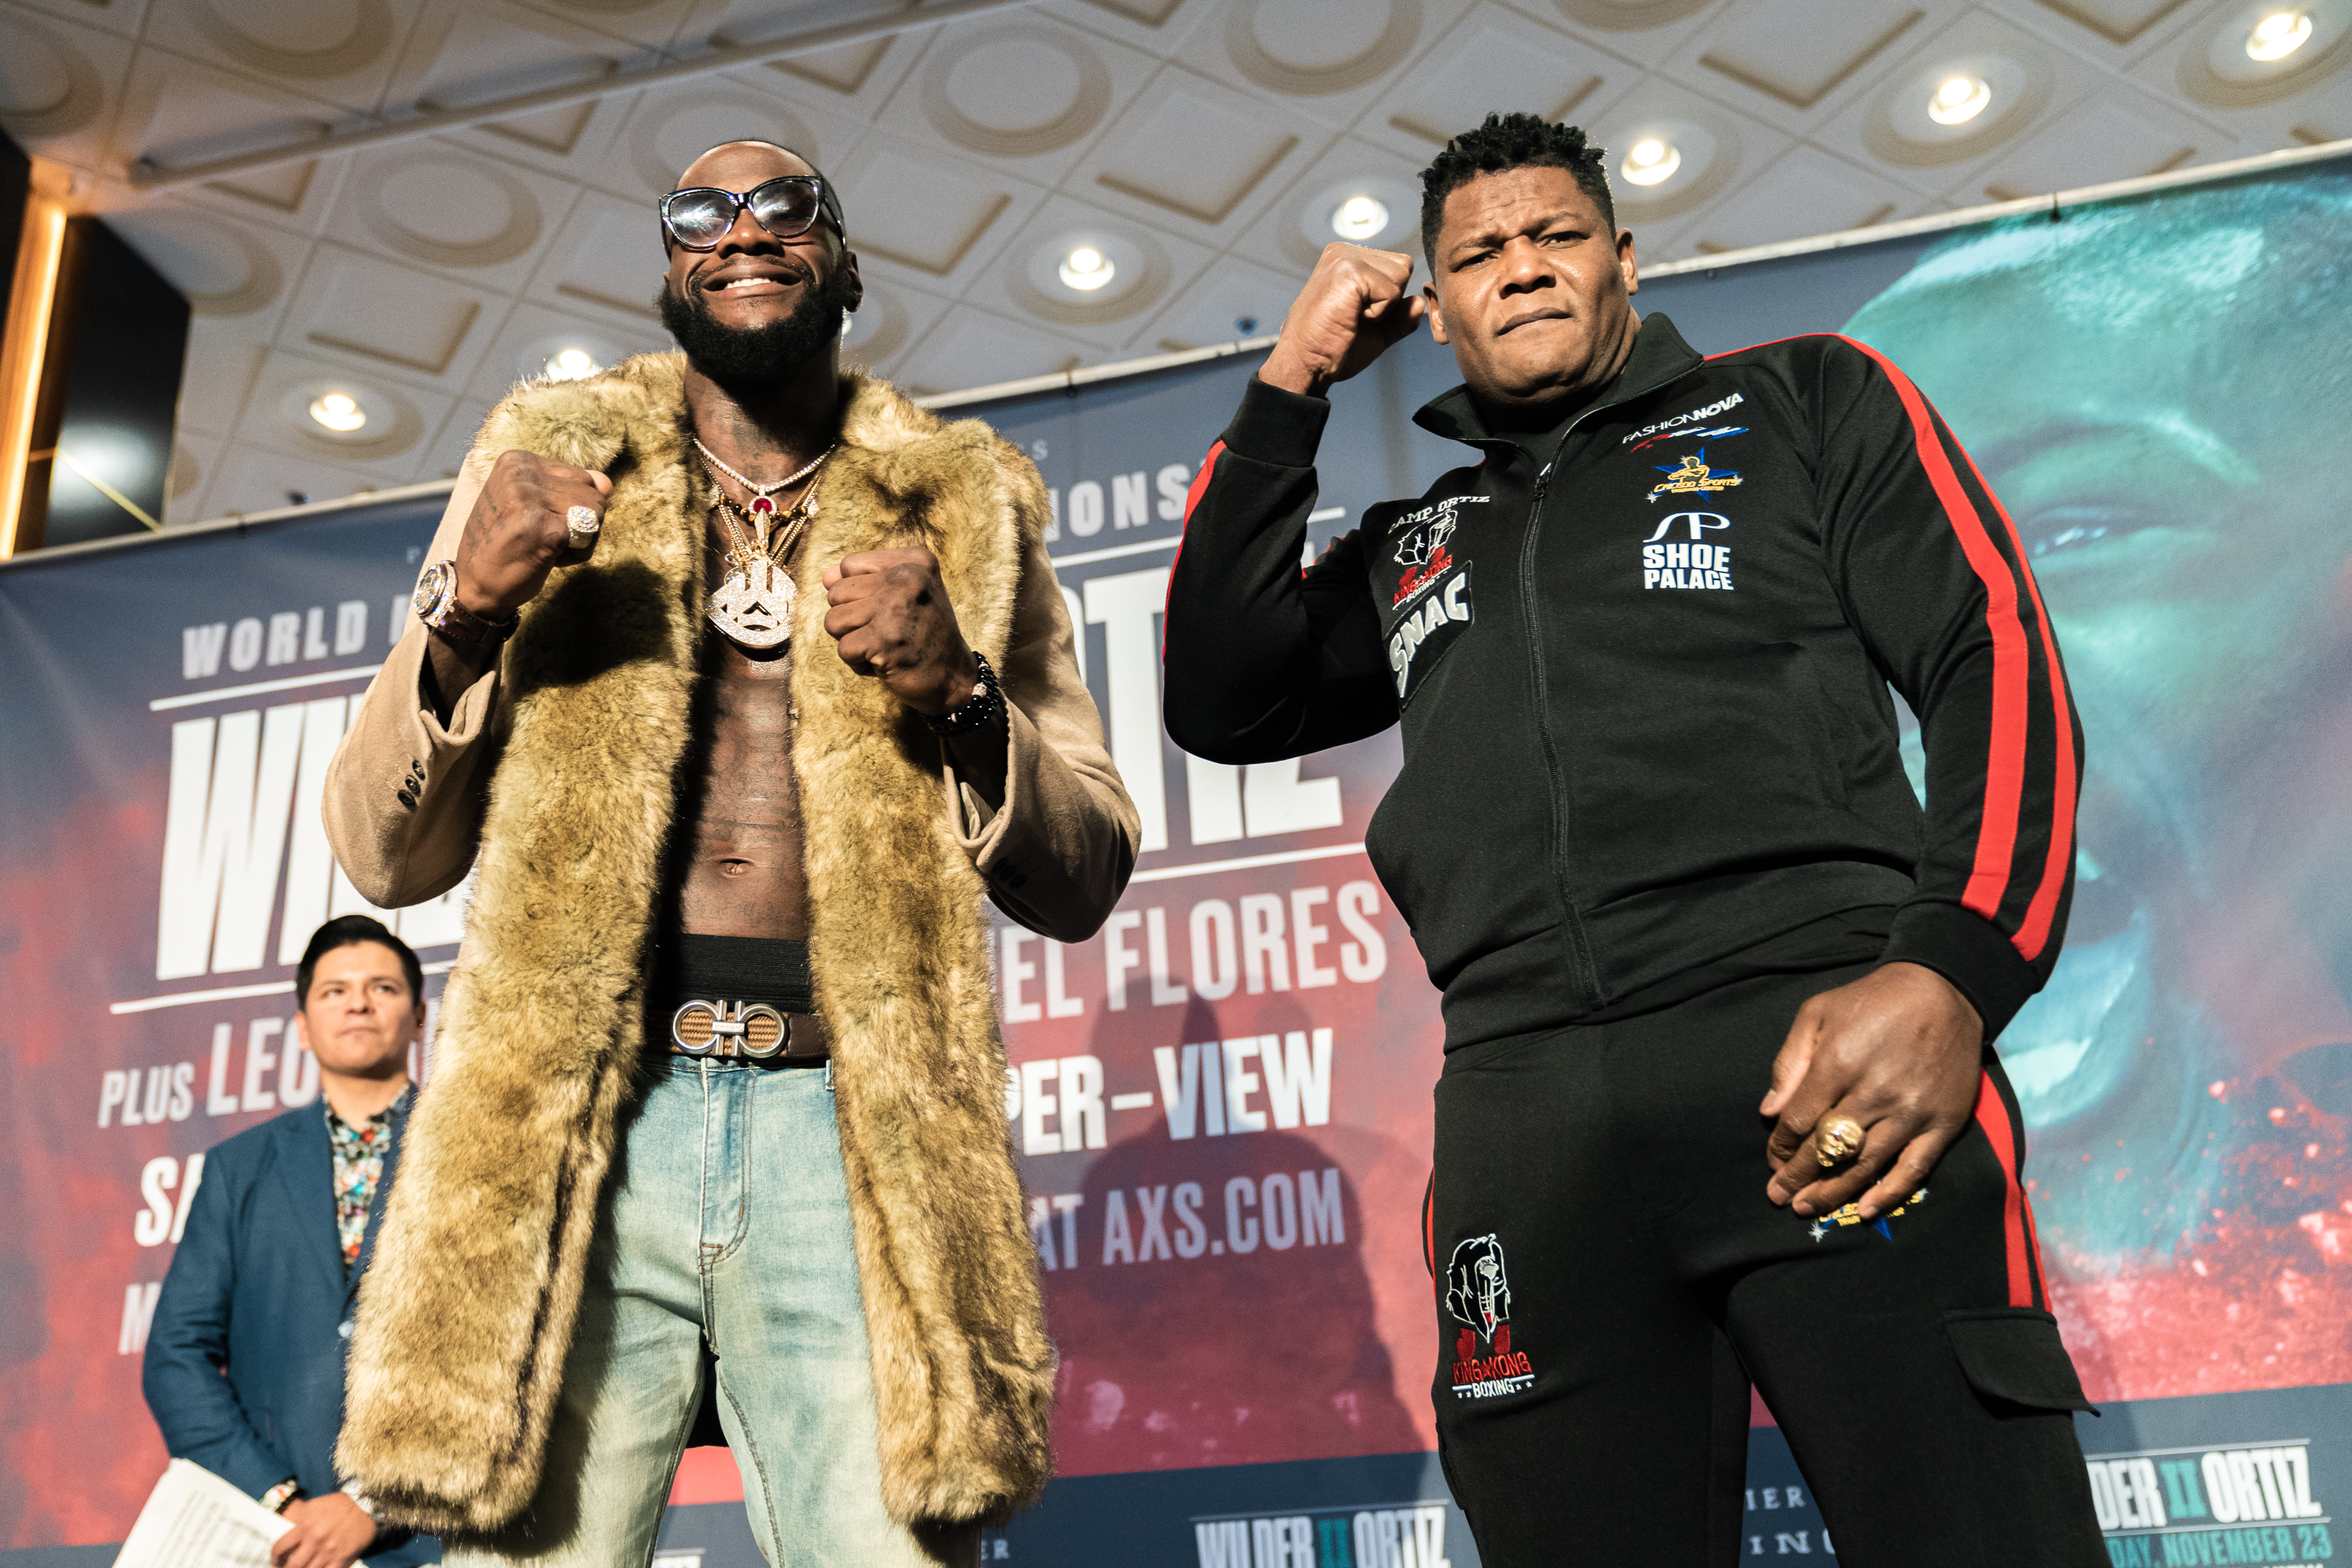 399504E0 1788 4795 AC47 170113DD80D6 - Boxing Insider Notebook: Fox, Wilder, Ortiz, Hart, Smith, and more…